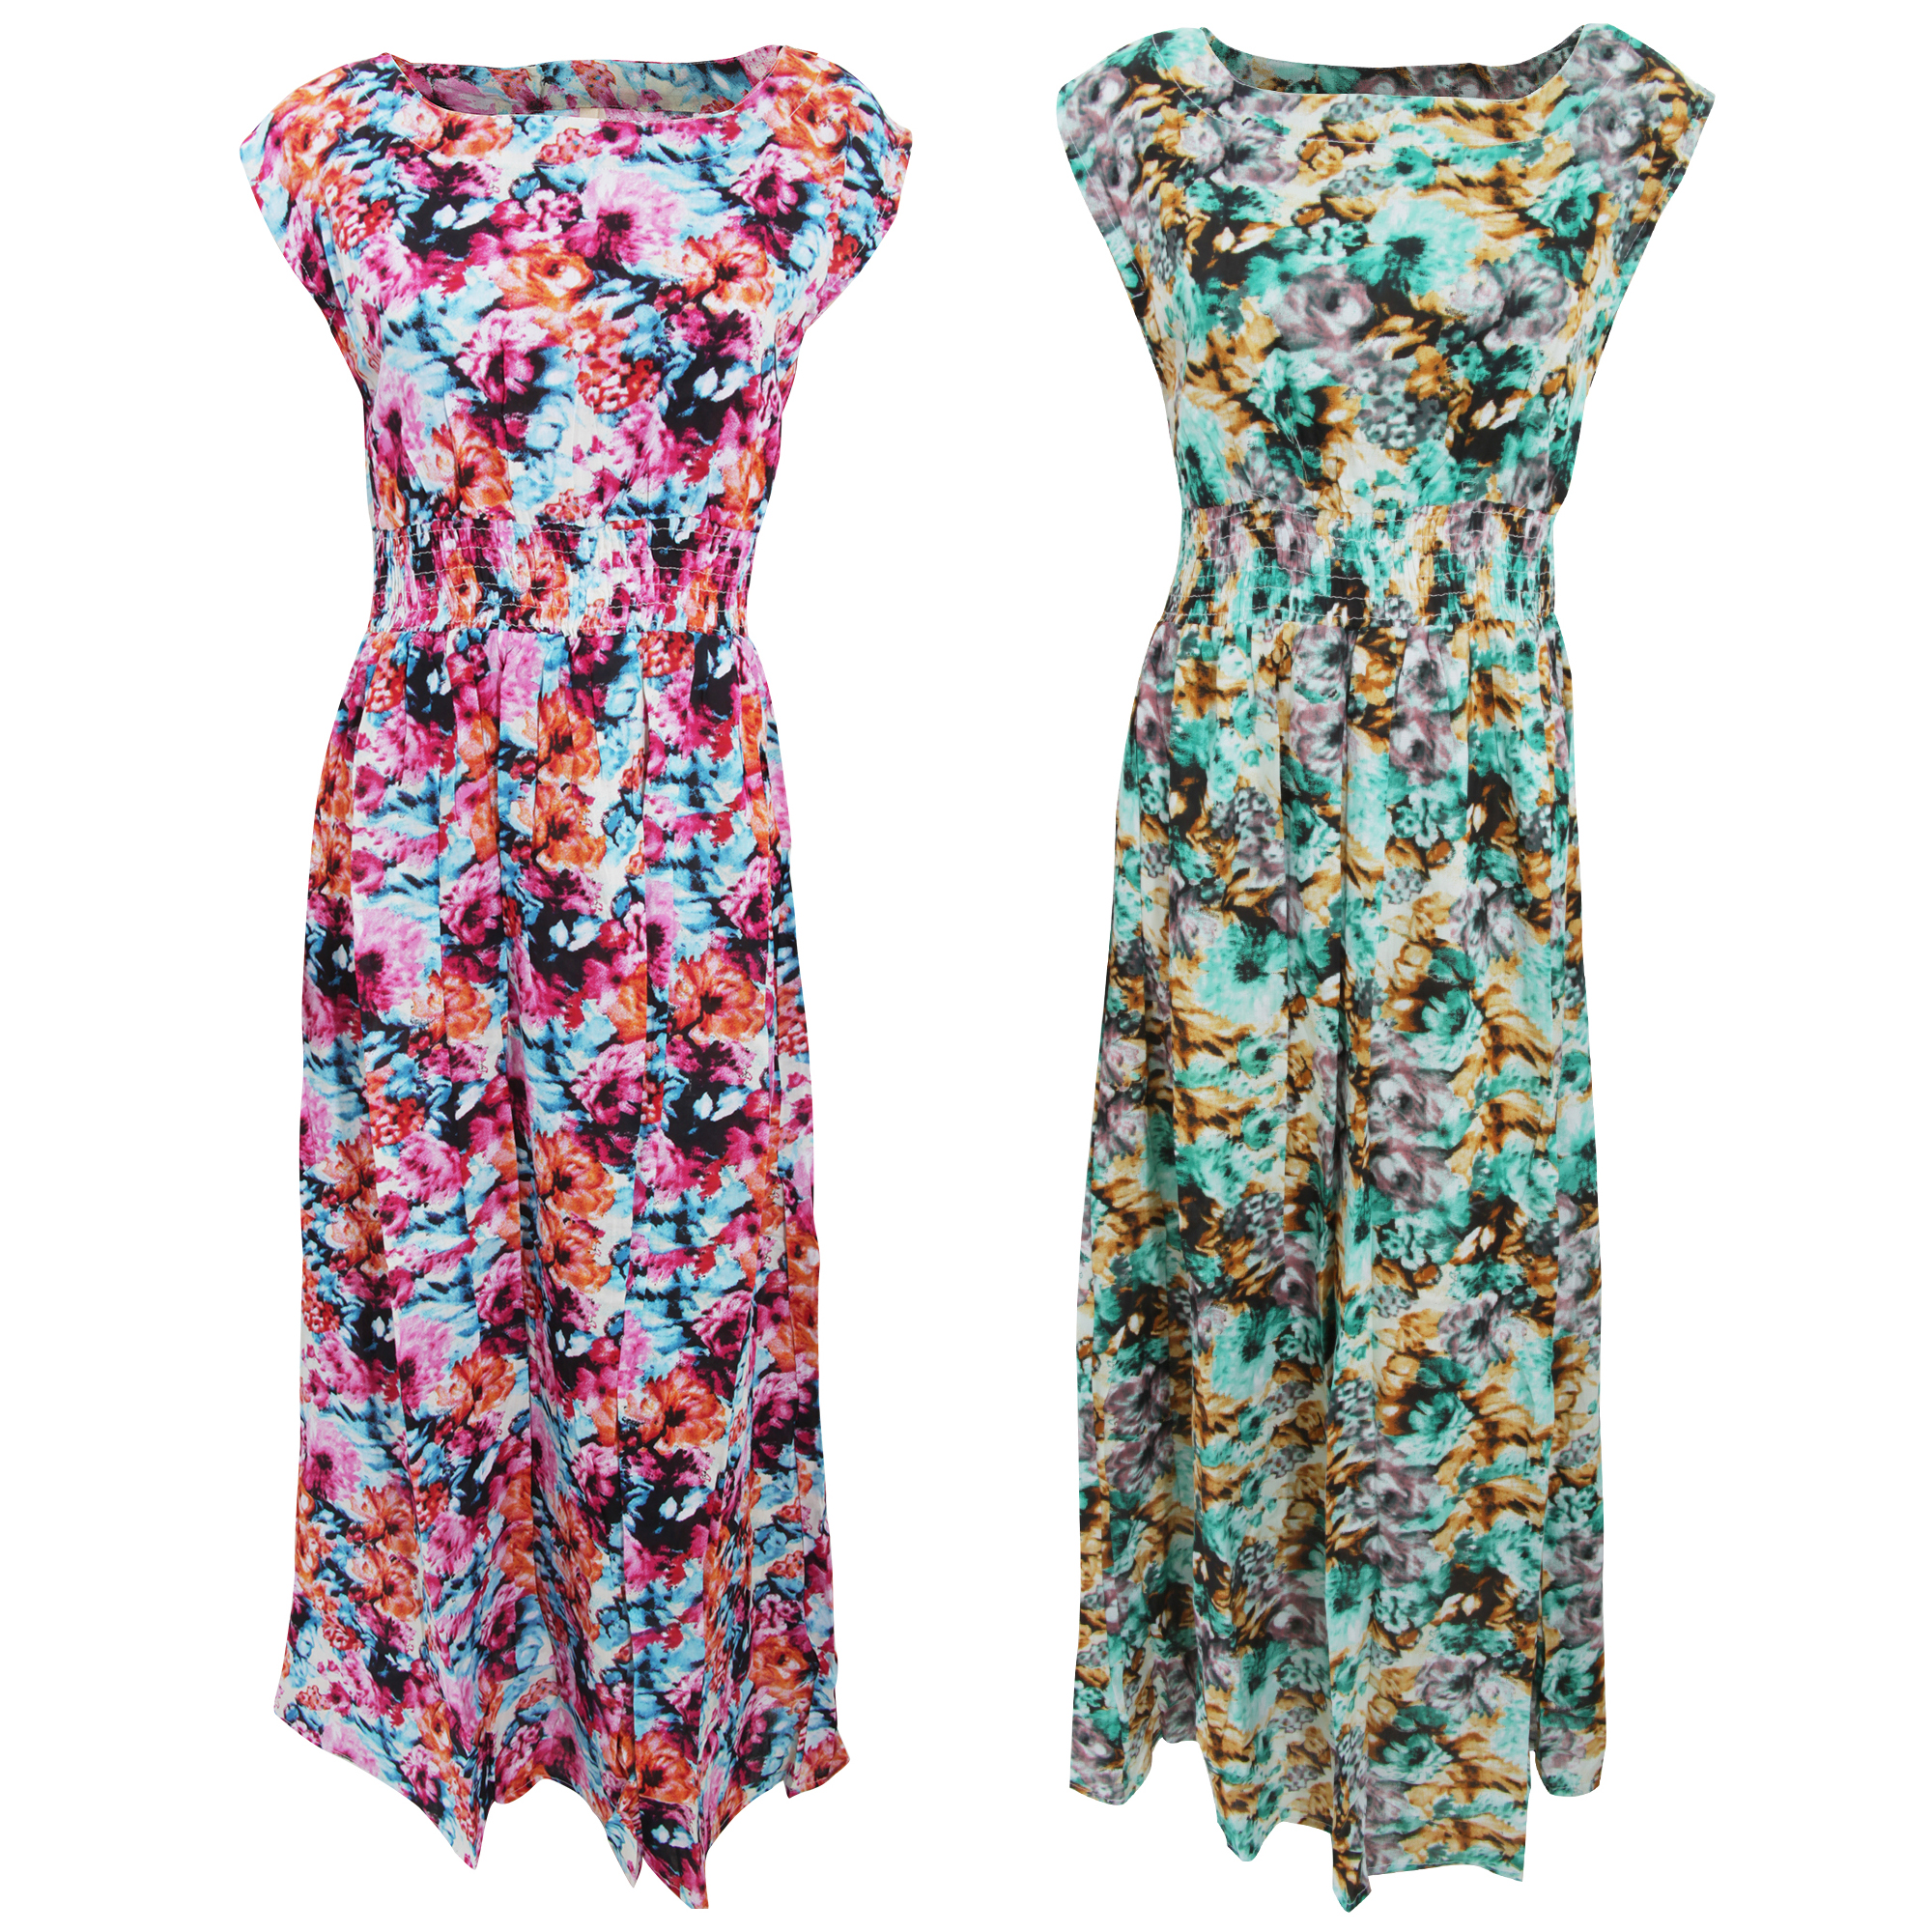 Bulk, Wholesale, Job Lot, Clearance Assorted Clothing (Dresses, Tops, Footwear And More) (Box 15) (Womens Floral Sleeveless Dresses (Set of 29))